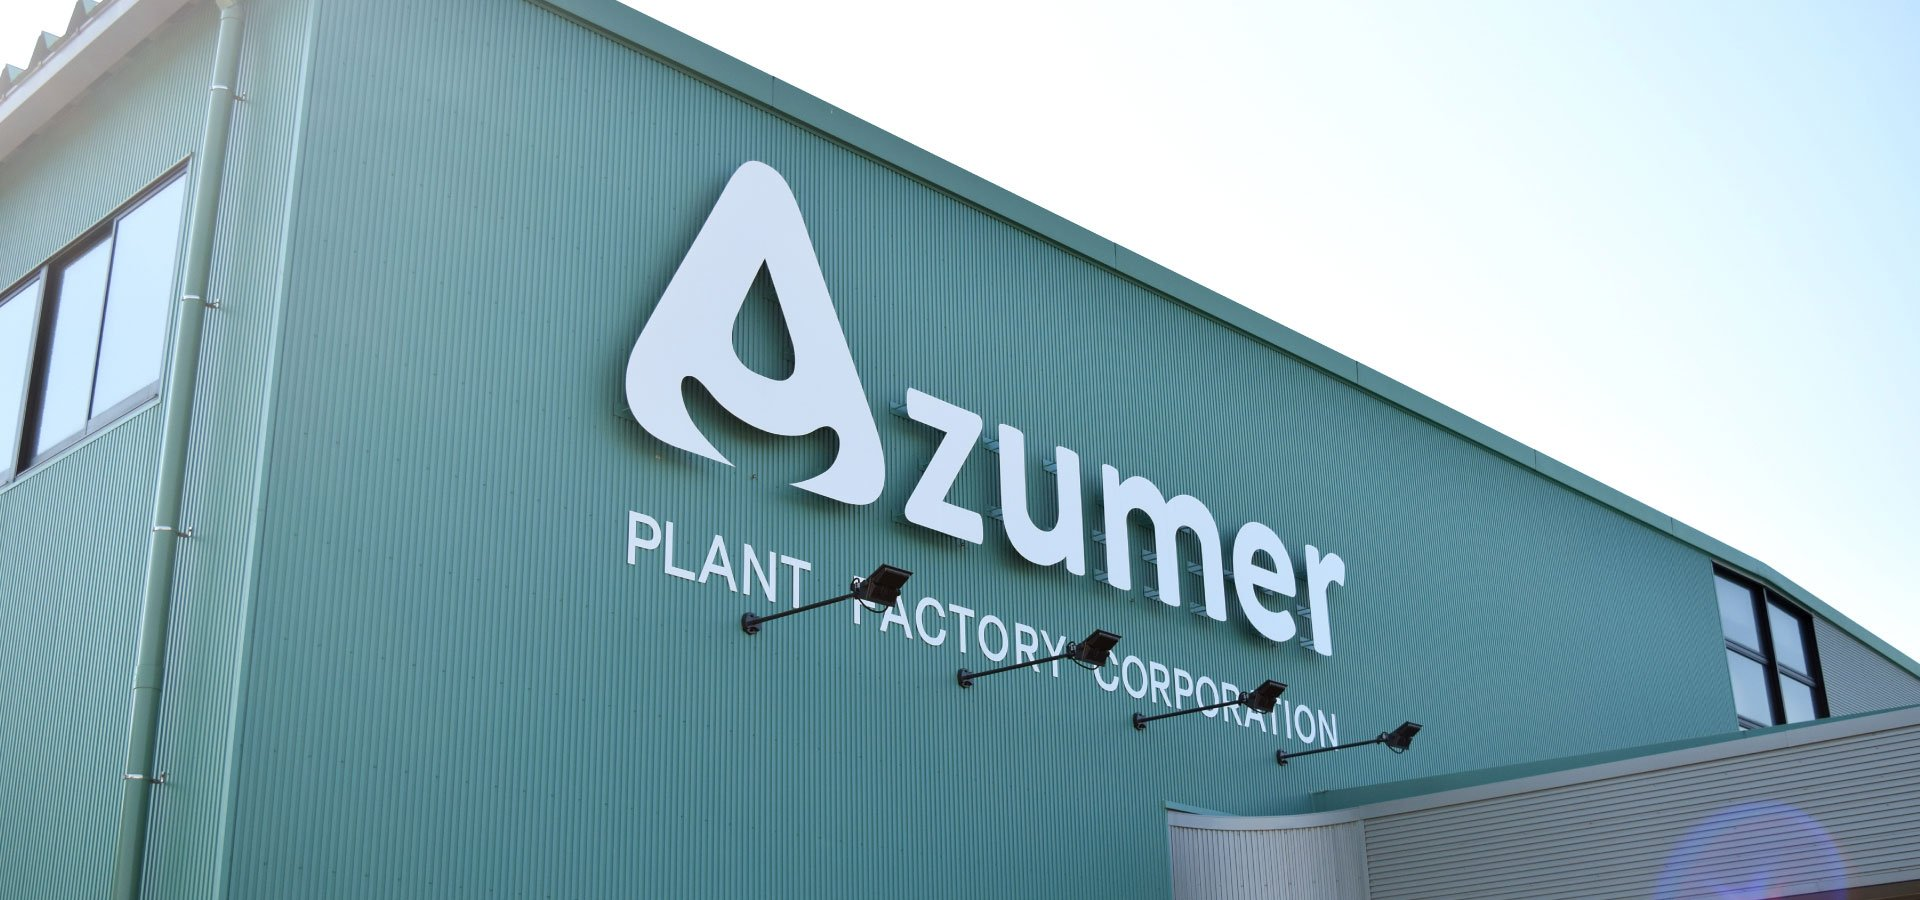 azumer signage on factory